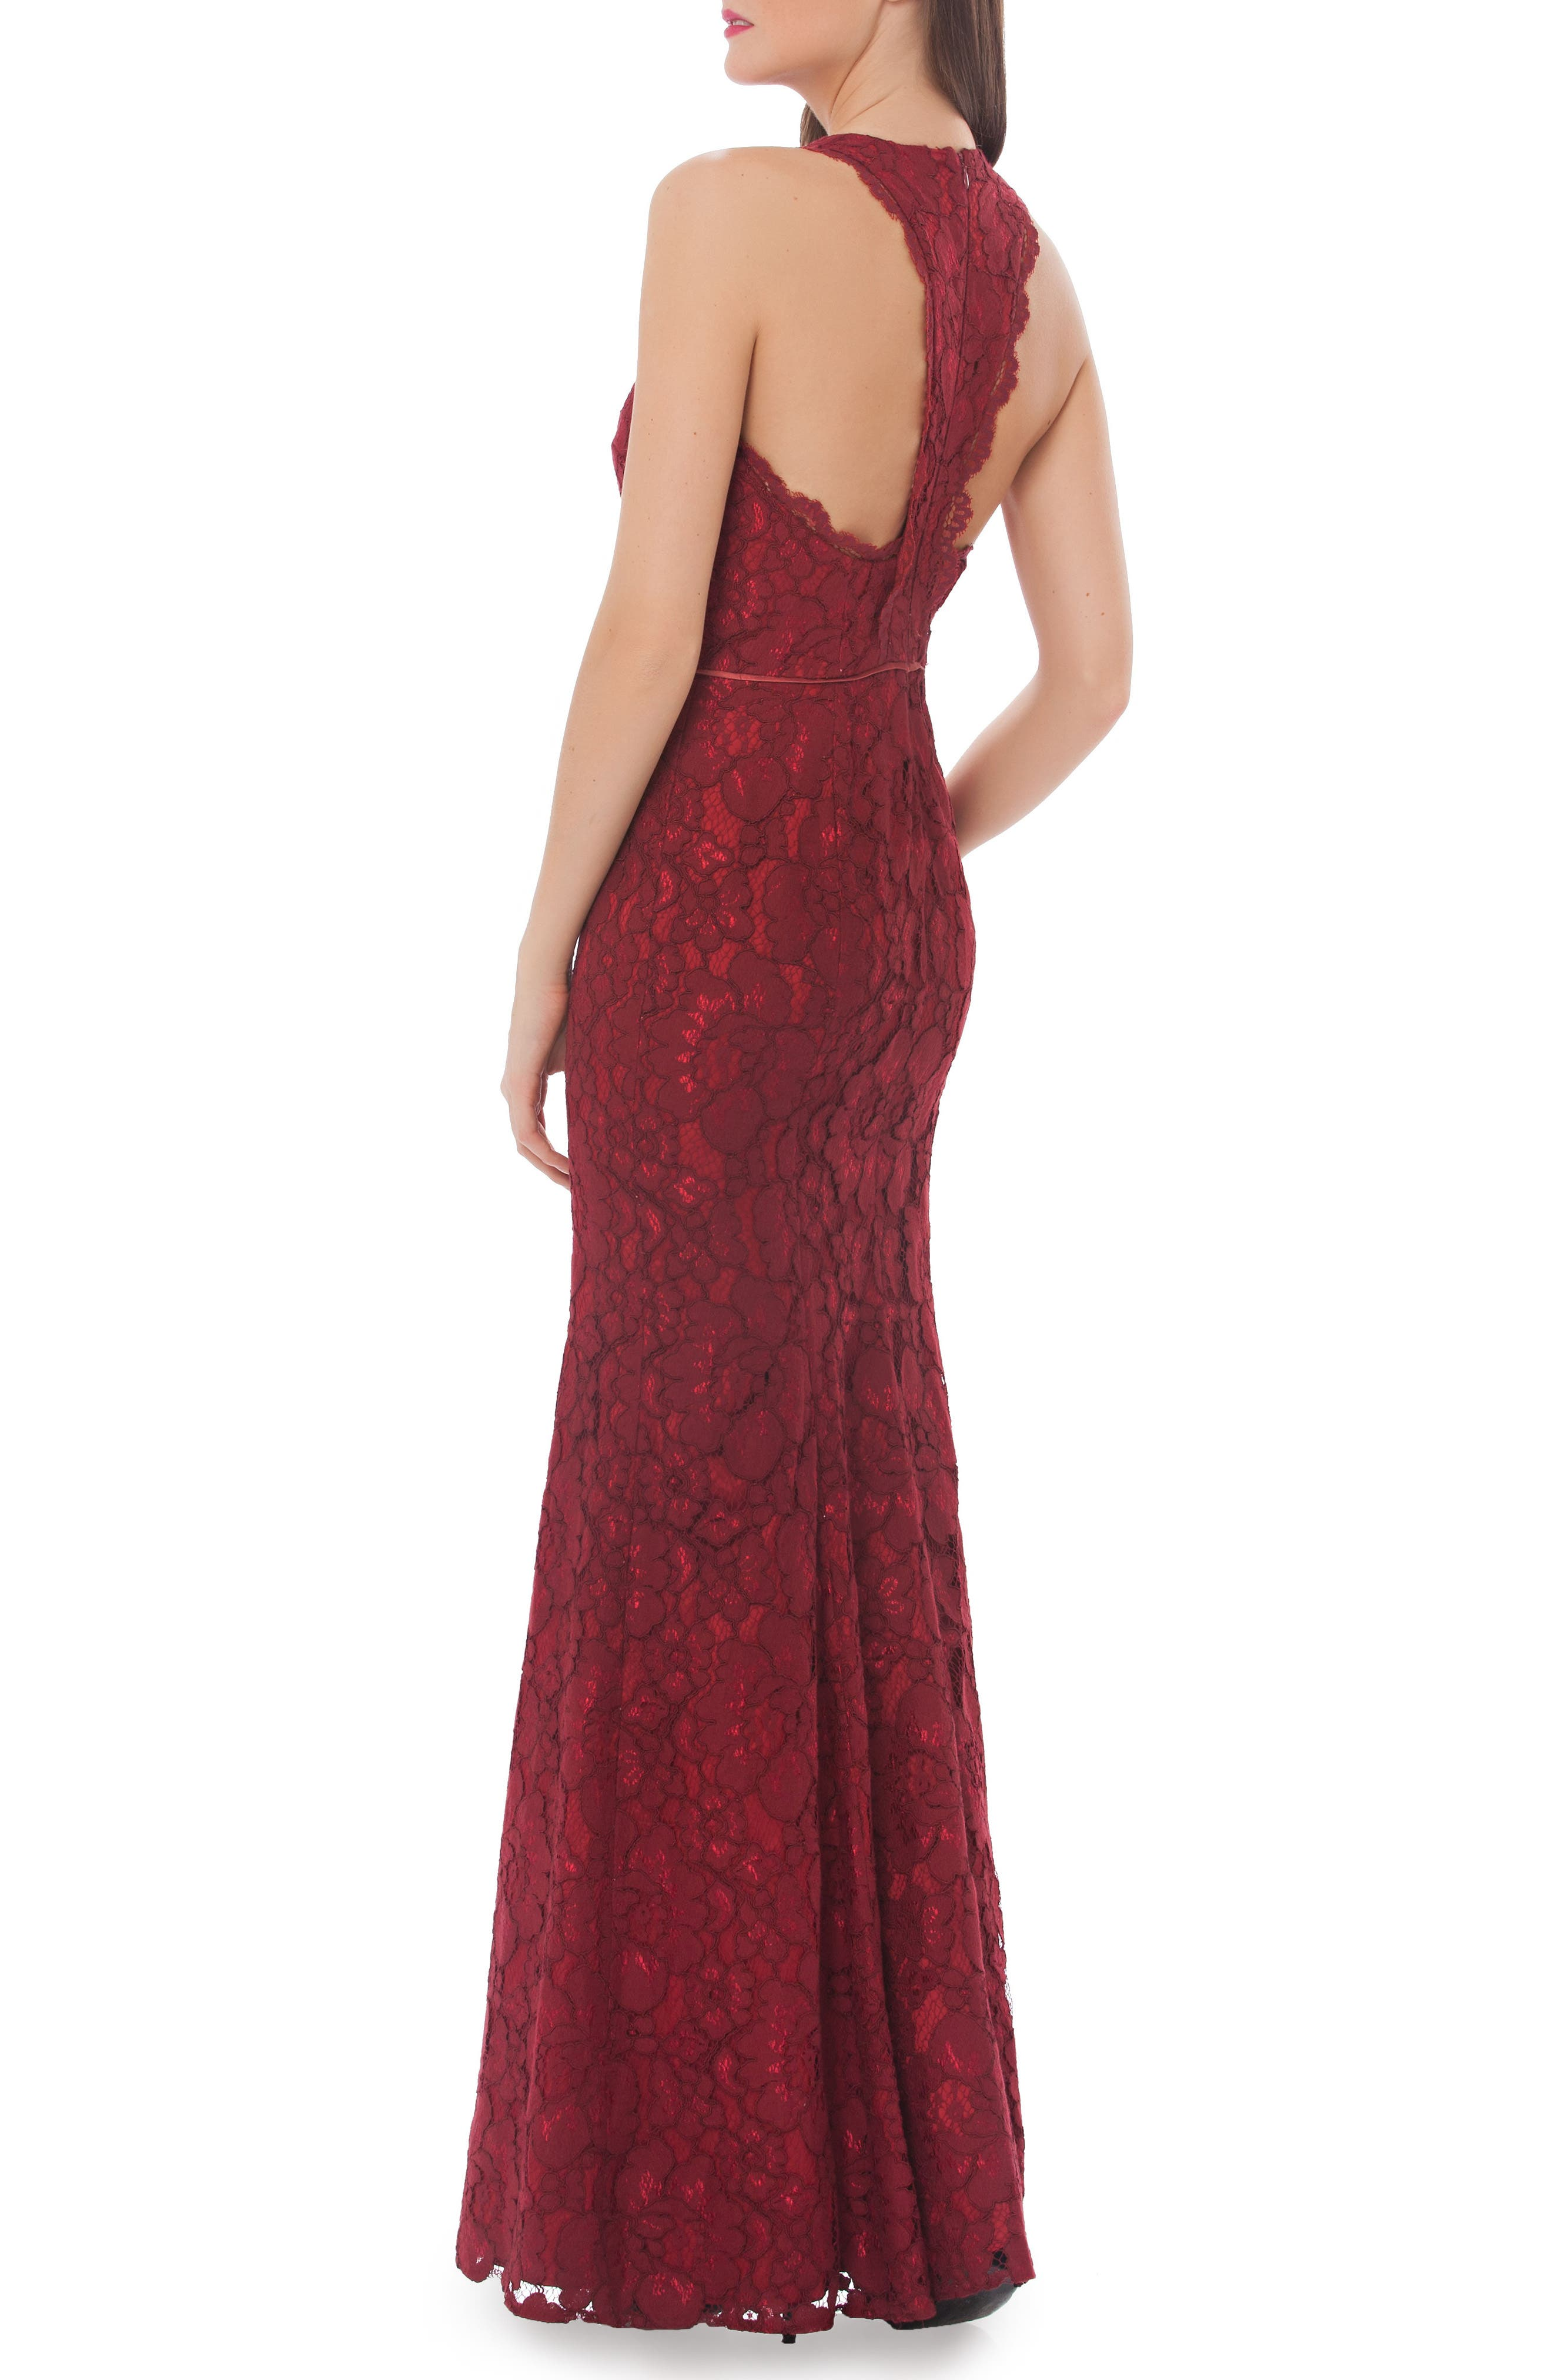 Corded Floral Lace Mermaid Gown,                             Alternate thumbnail 2, color,                             608